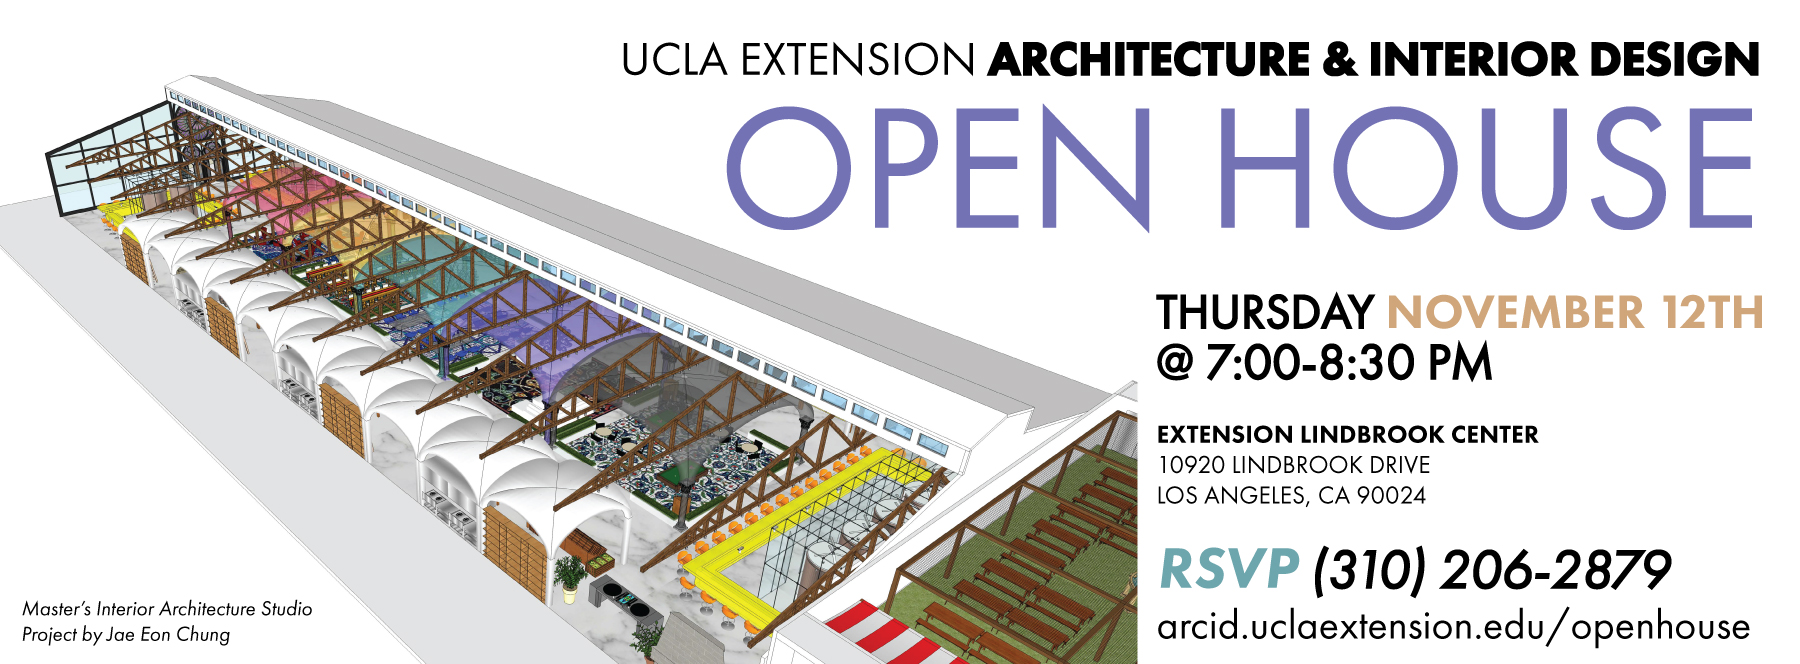 Amazing Get Ready For The UCLA Extension Arc+ID Information Session!